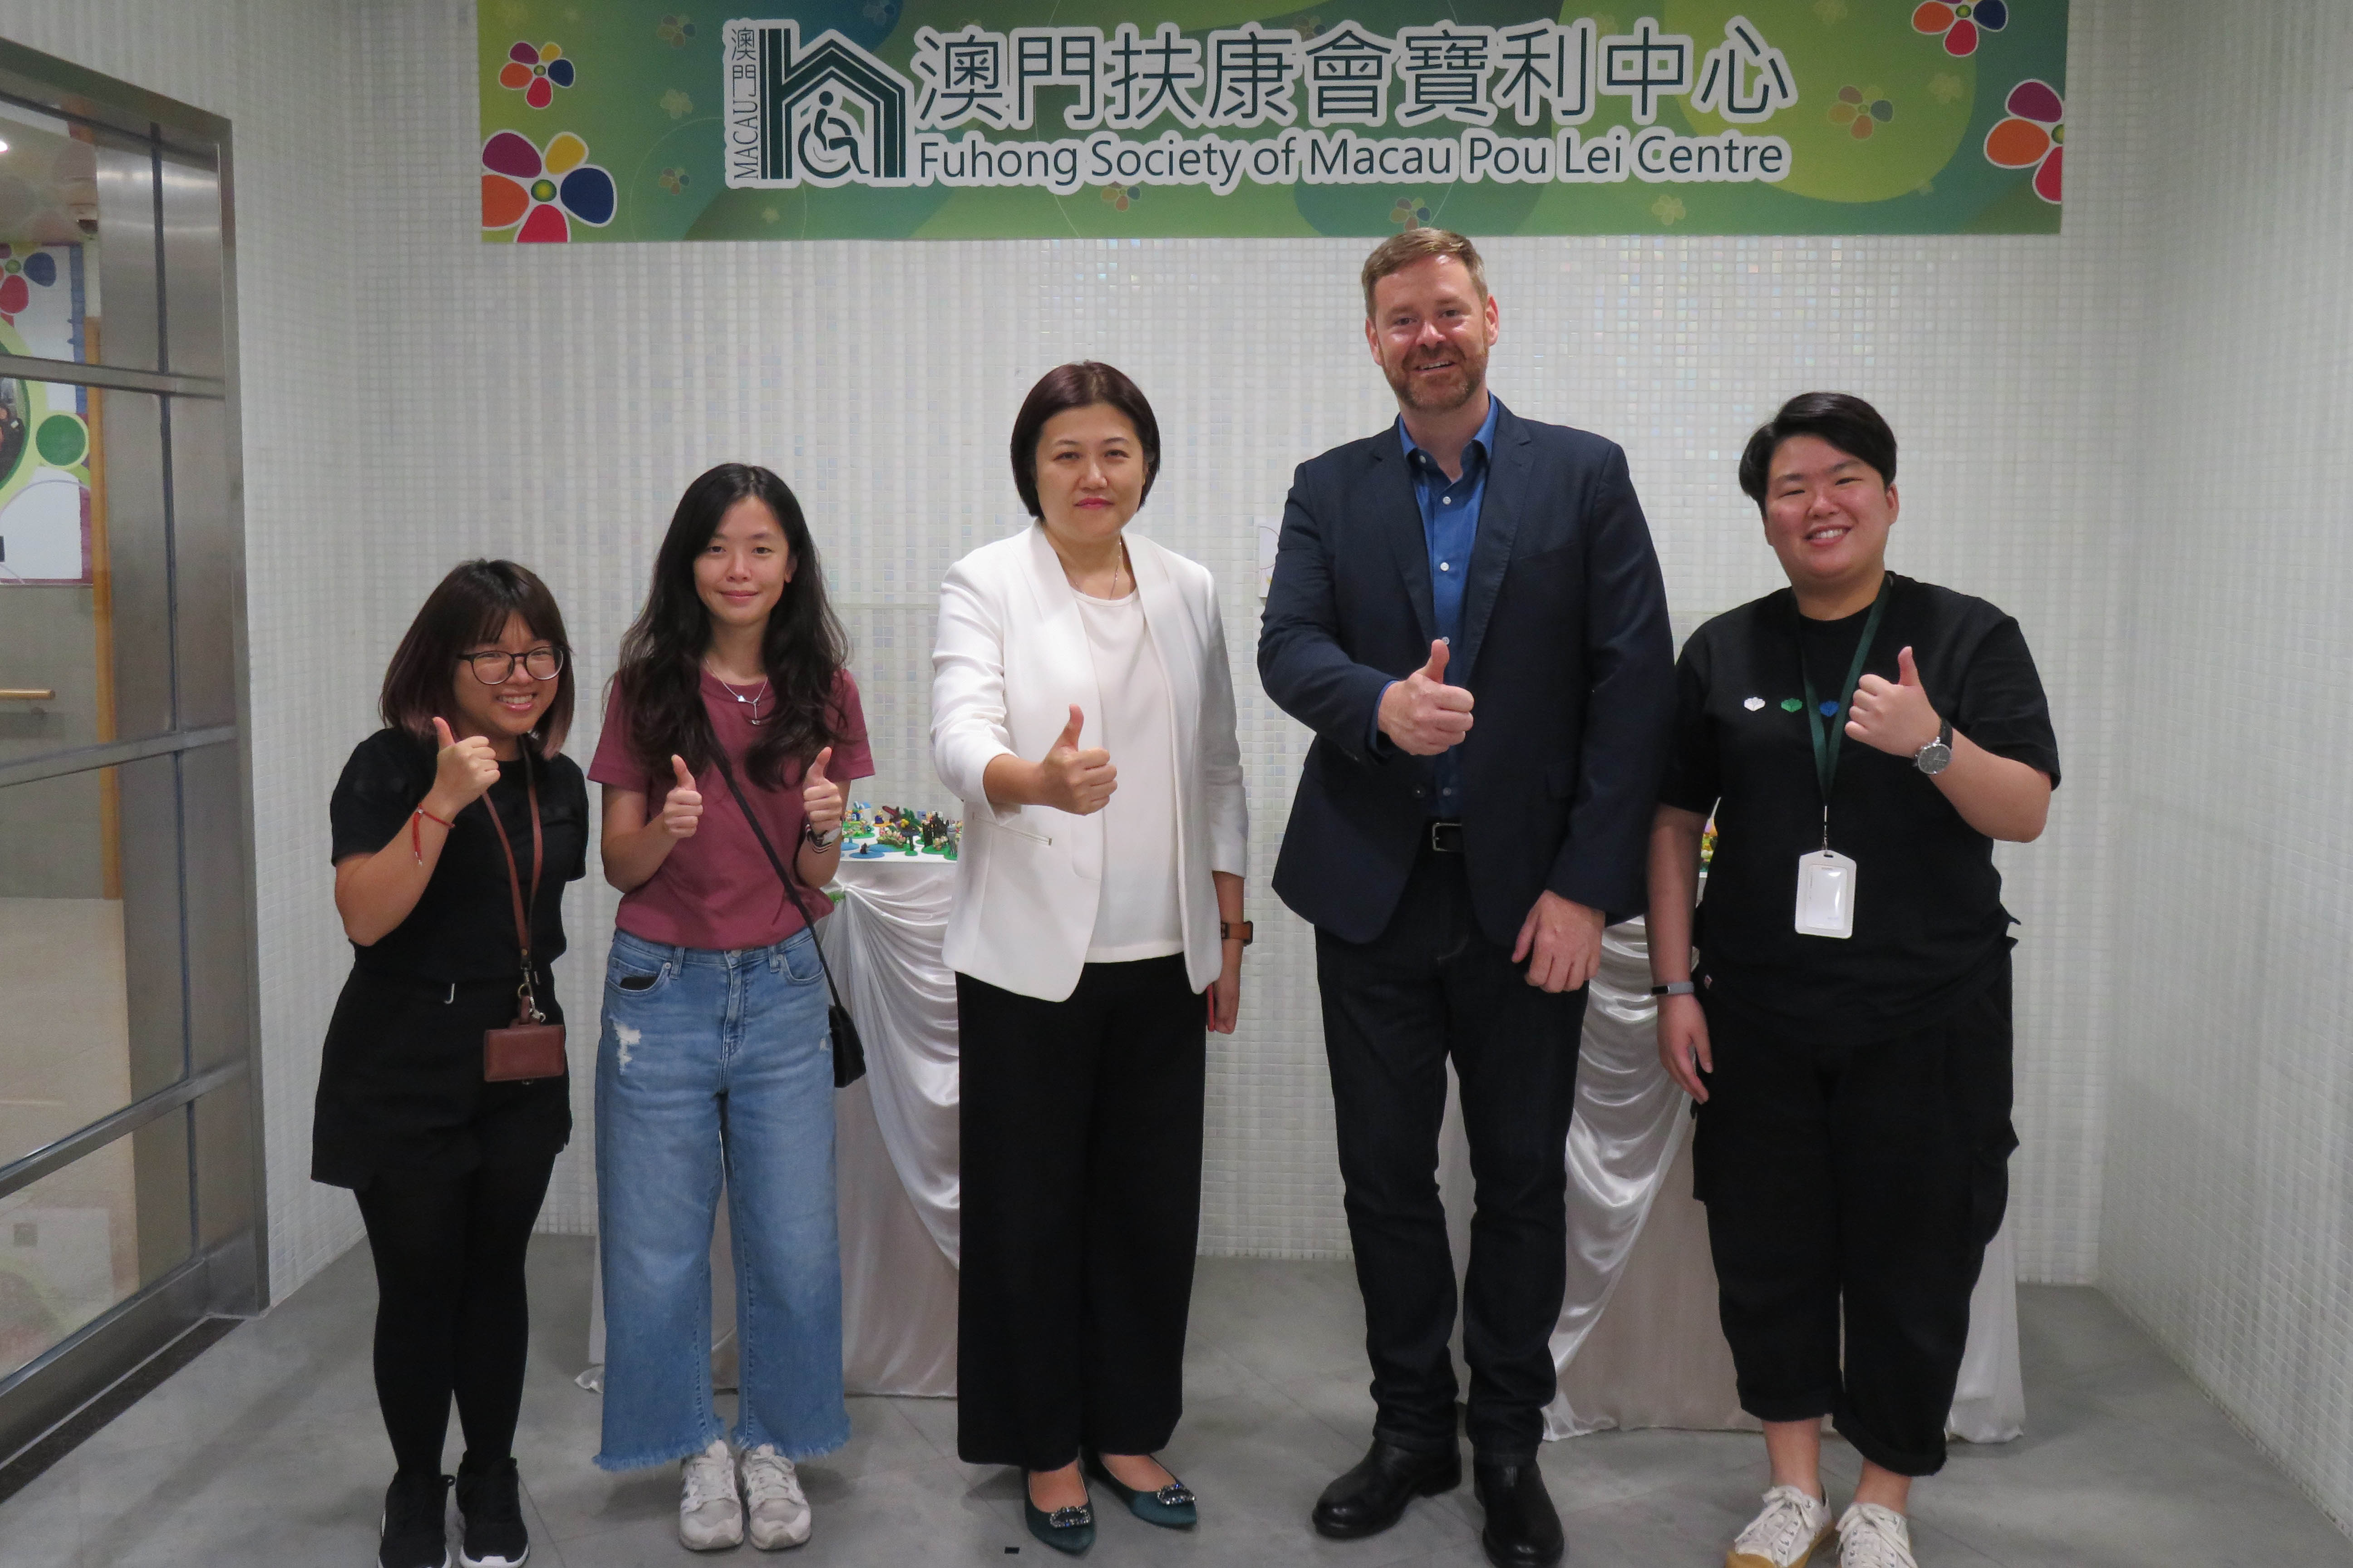 Sit Hao Fong (2nd from left), Chau Wai I (middle), and Prof Brian Hall (2nd from right).